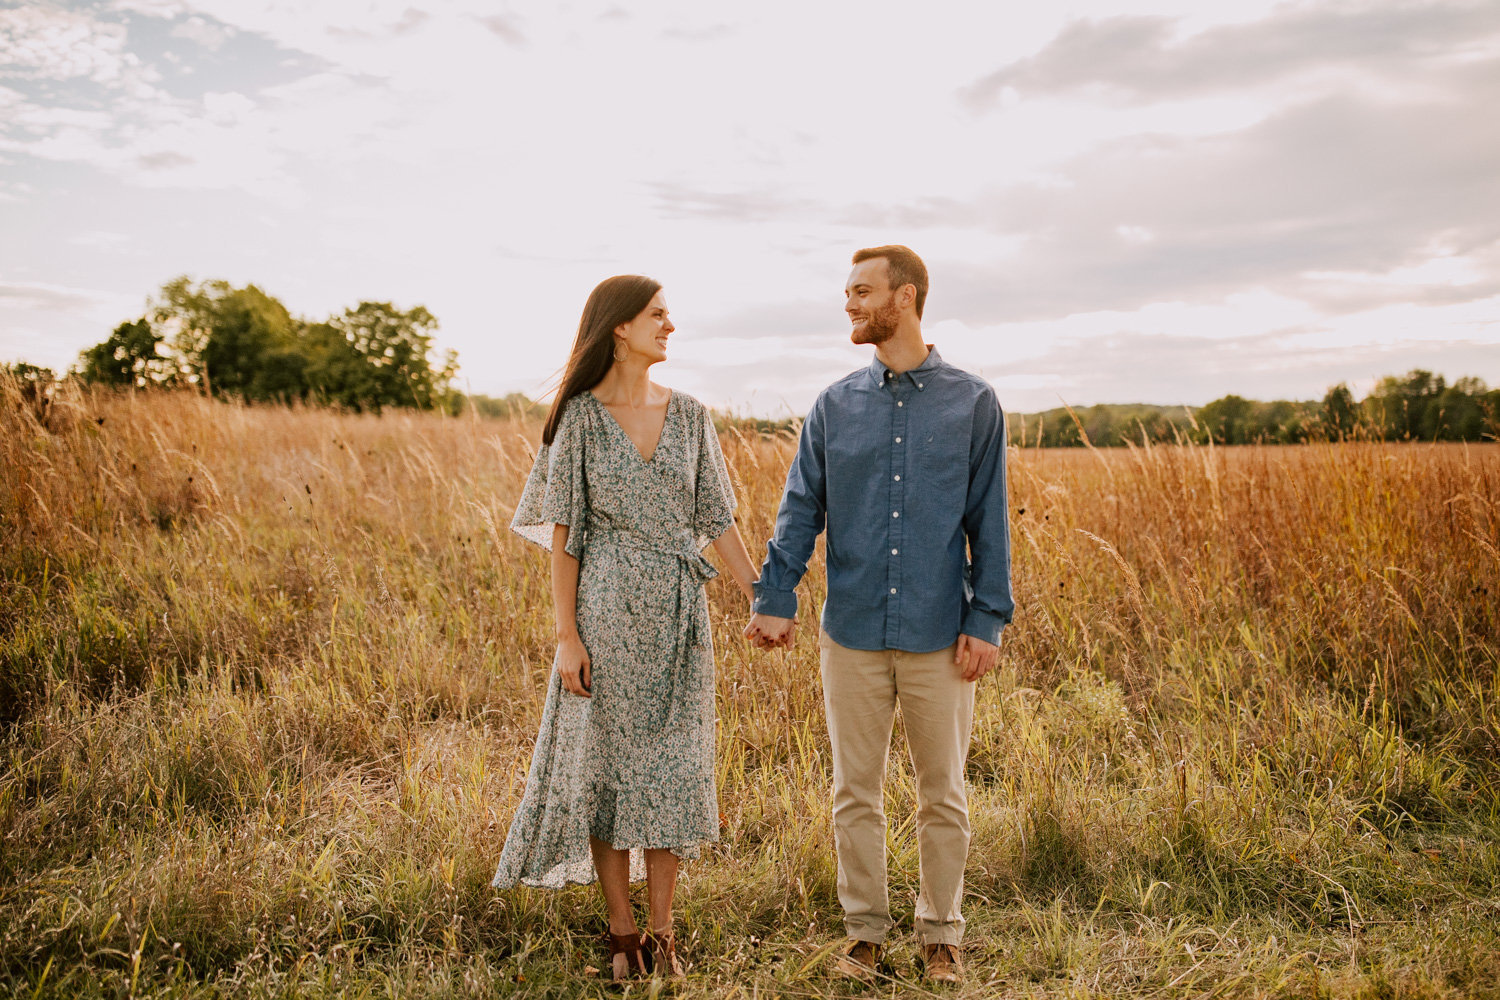 Sunset-Autumn-Engagement-Session-Prophetstown-20